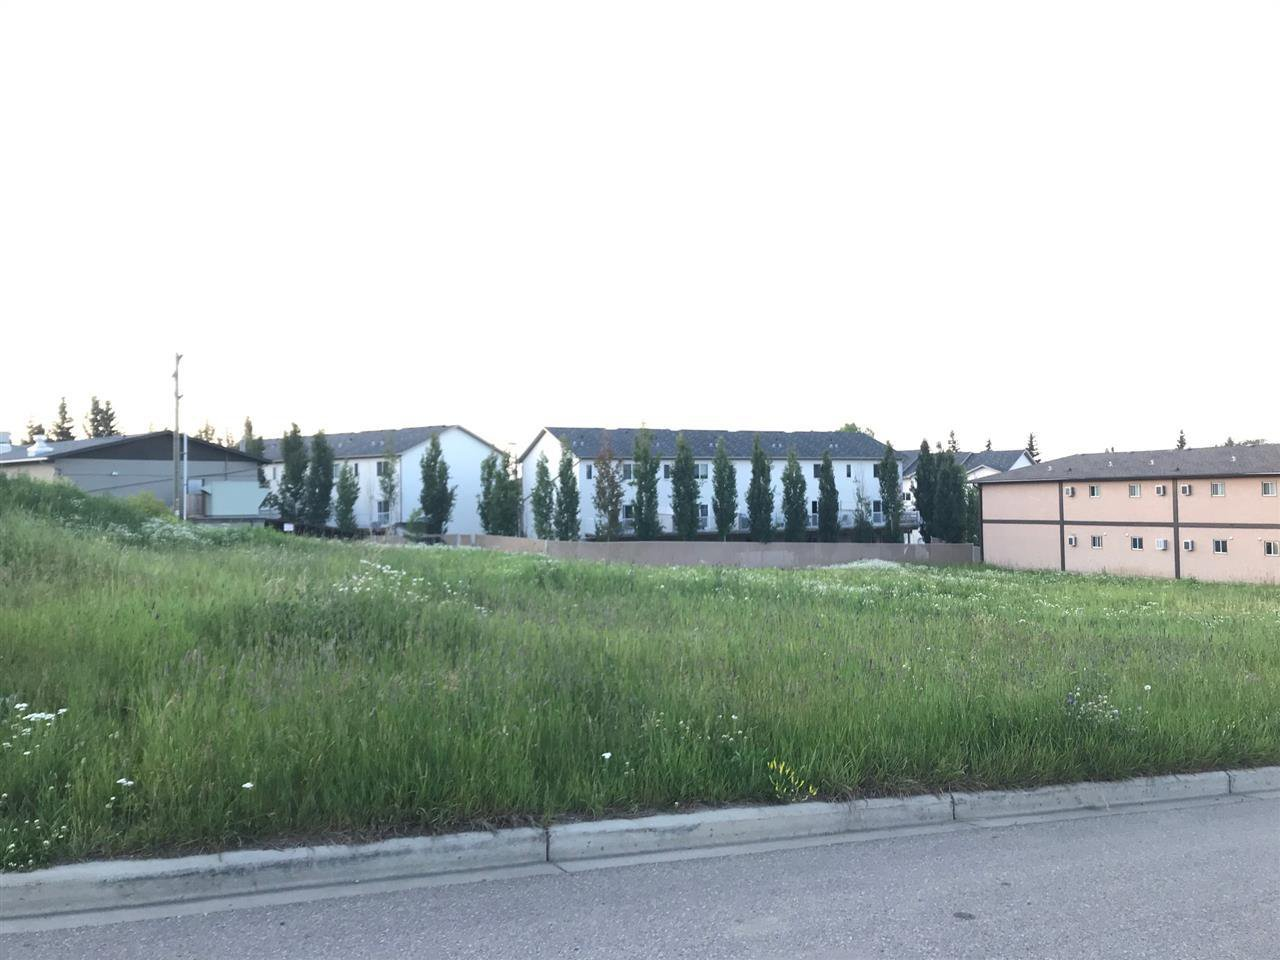 Main Photo: 1014 & 1016 8 Avenue N in Cold Lake: Land Commercial for sale : MLS®# E4166227